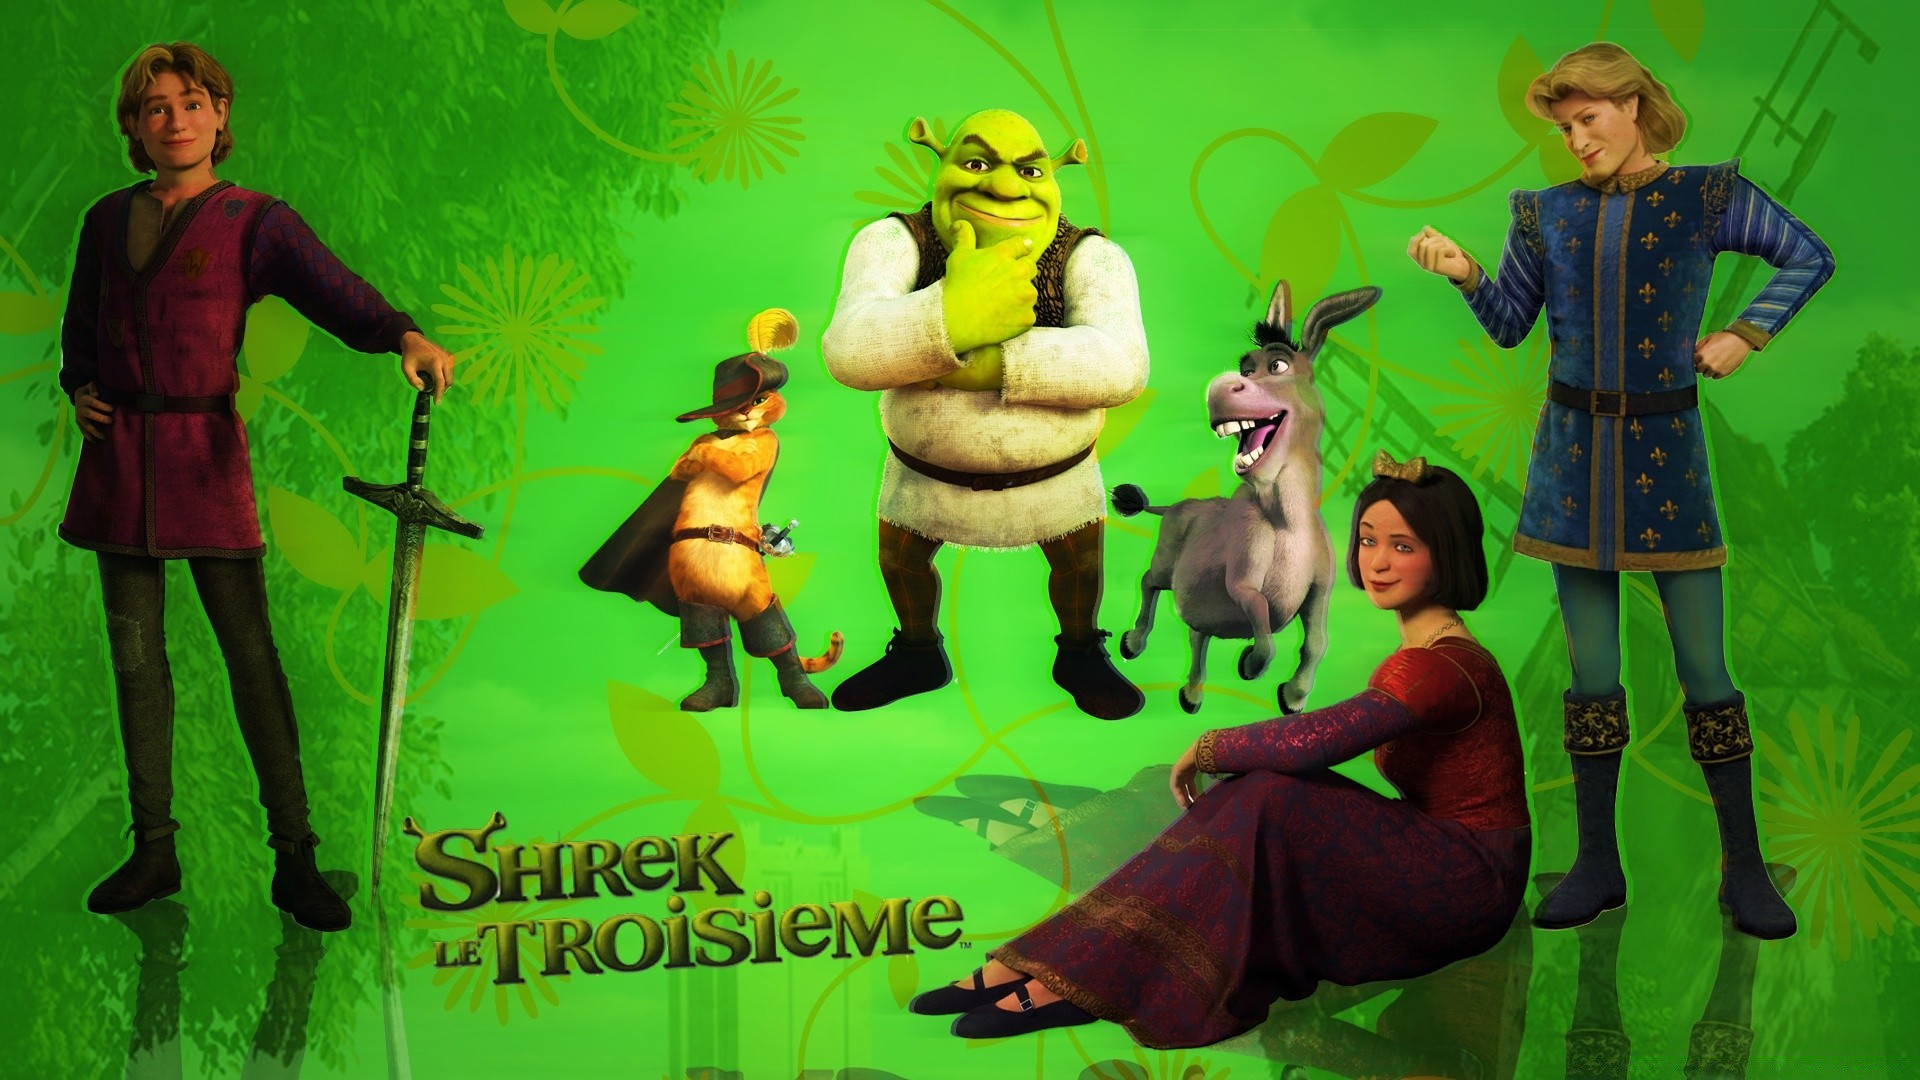 Shrek Android Wallpapers For Free